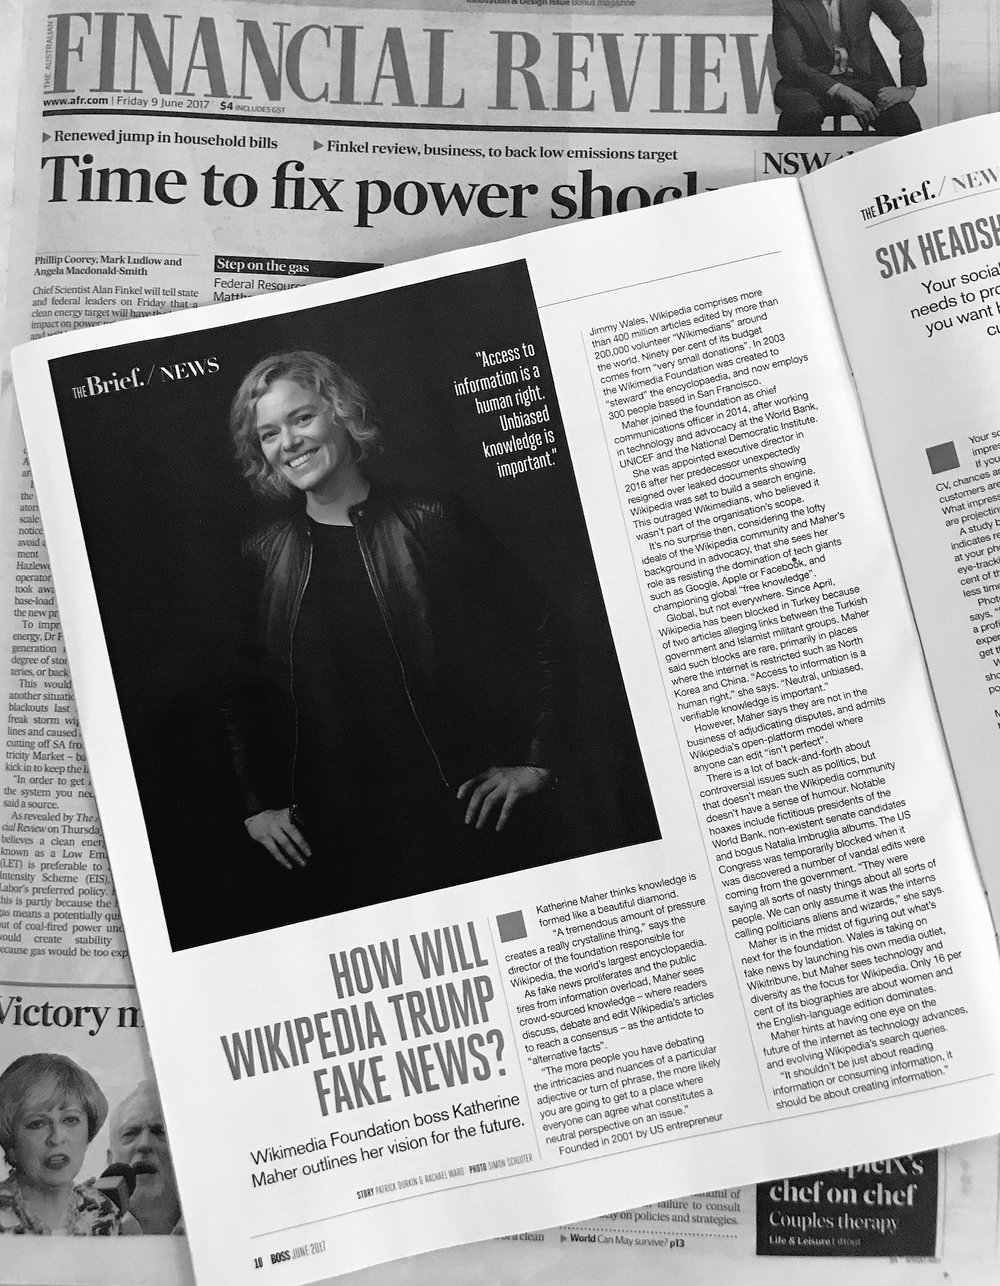 Melbourne Knowledge Week 2017 - Public relations for the program and keynote speakers of MKW2017, including Katherine Maher Executive Director Wikimedia Foundation, leading to media coverage in The Age, The Australian, AFR Boss Magazine, ABC News Breakfast and more.